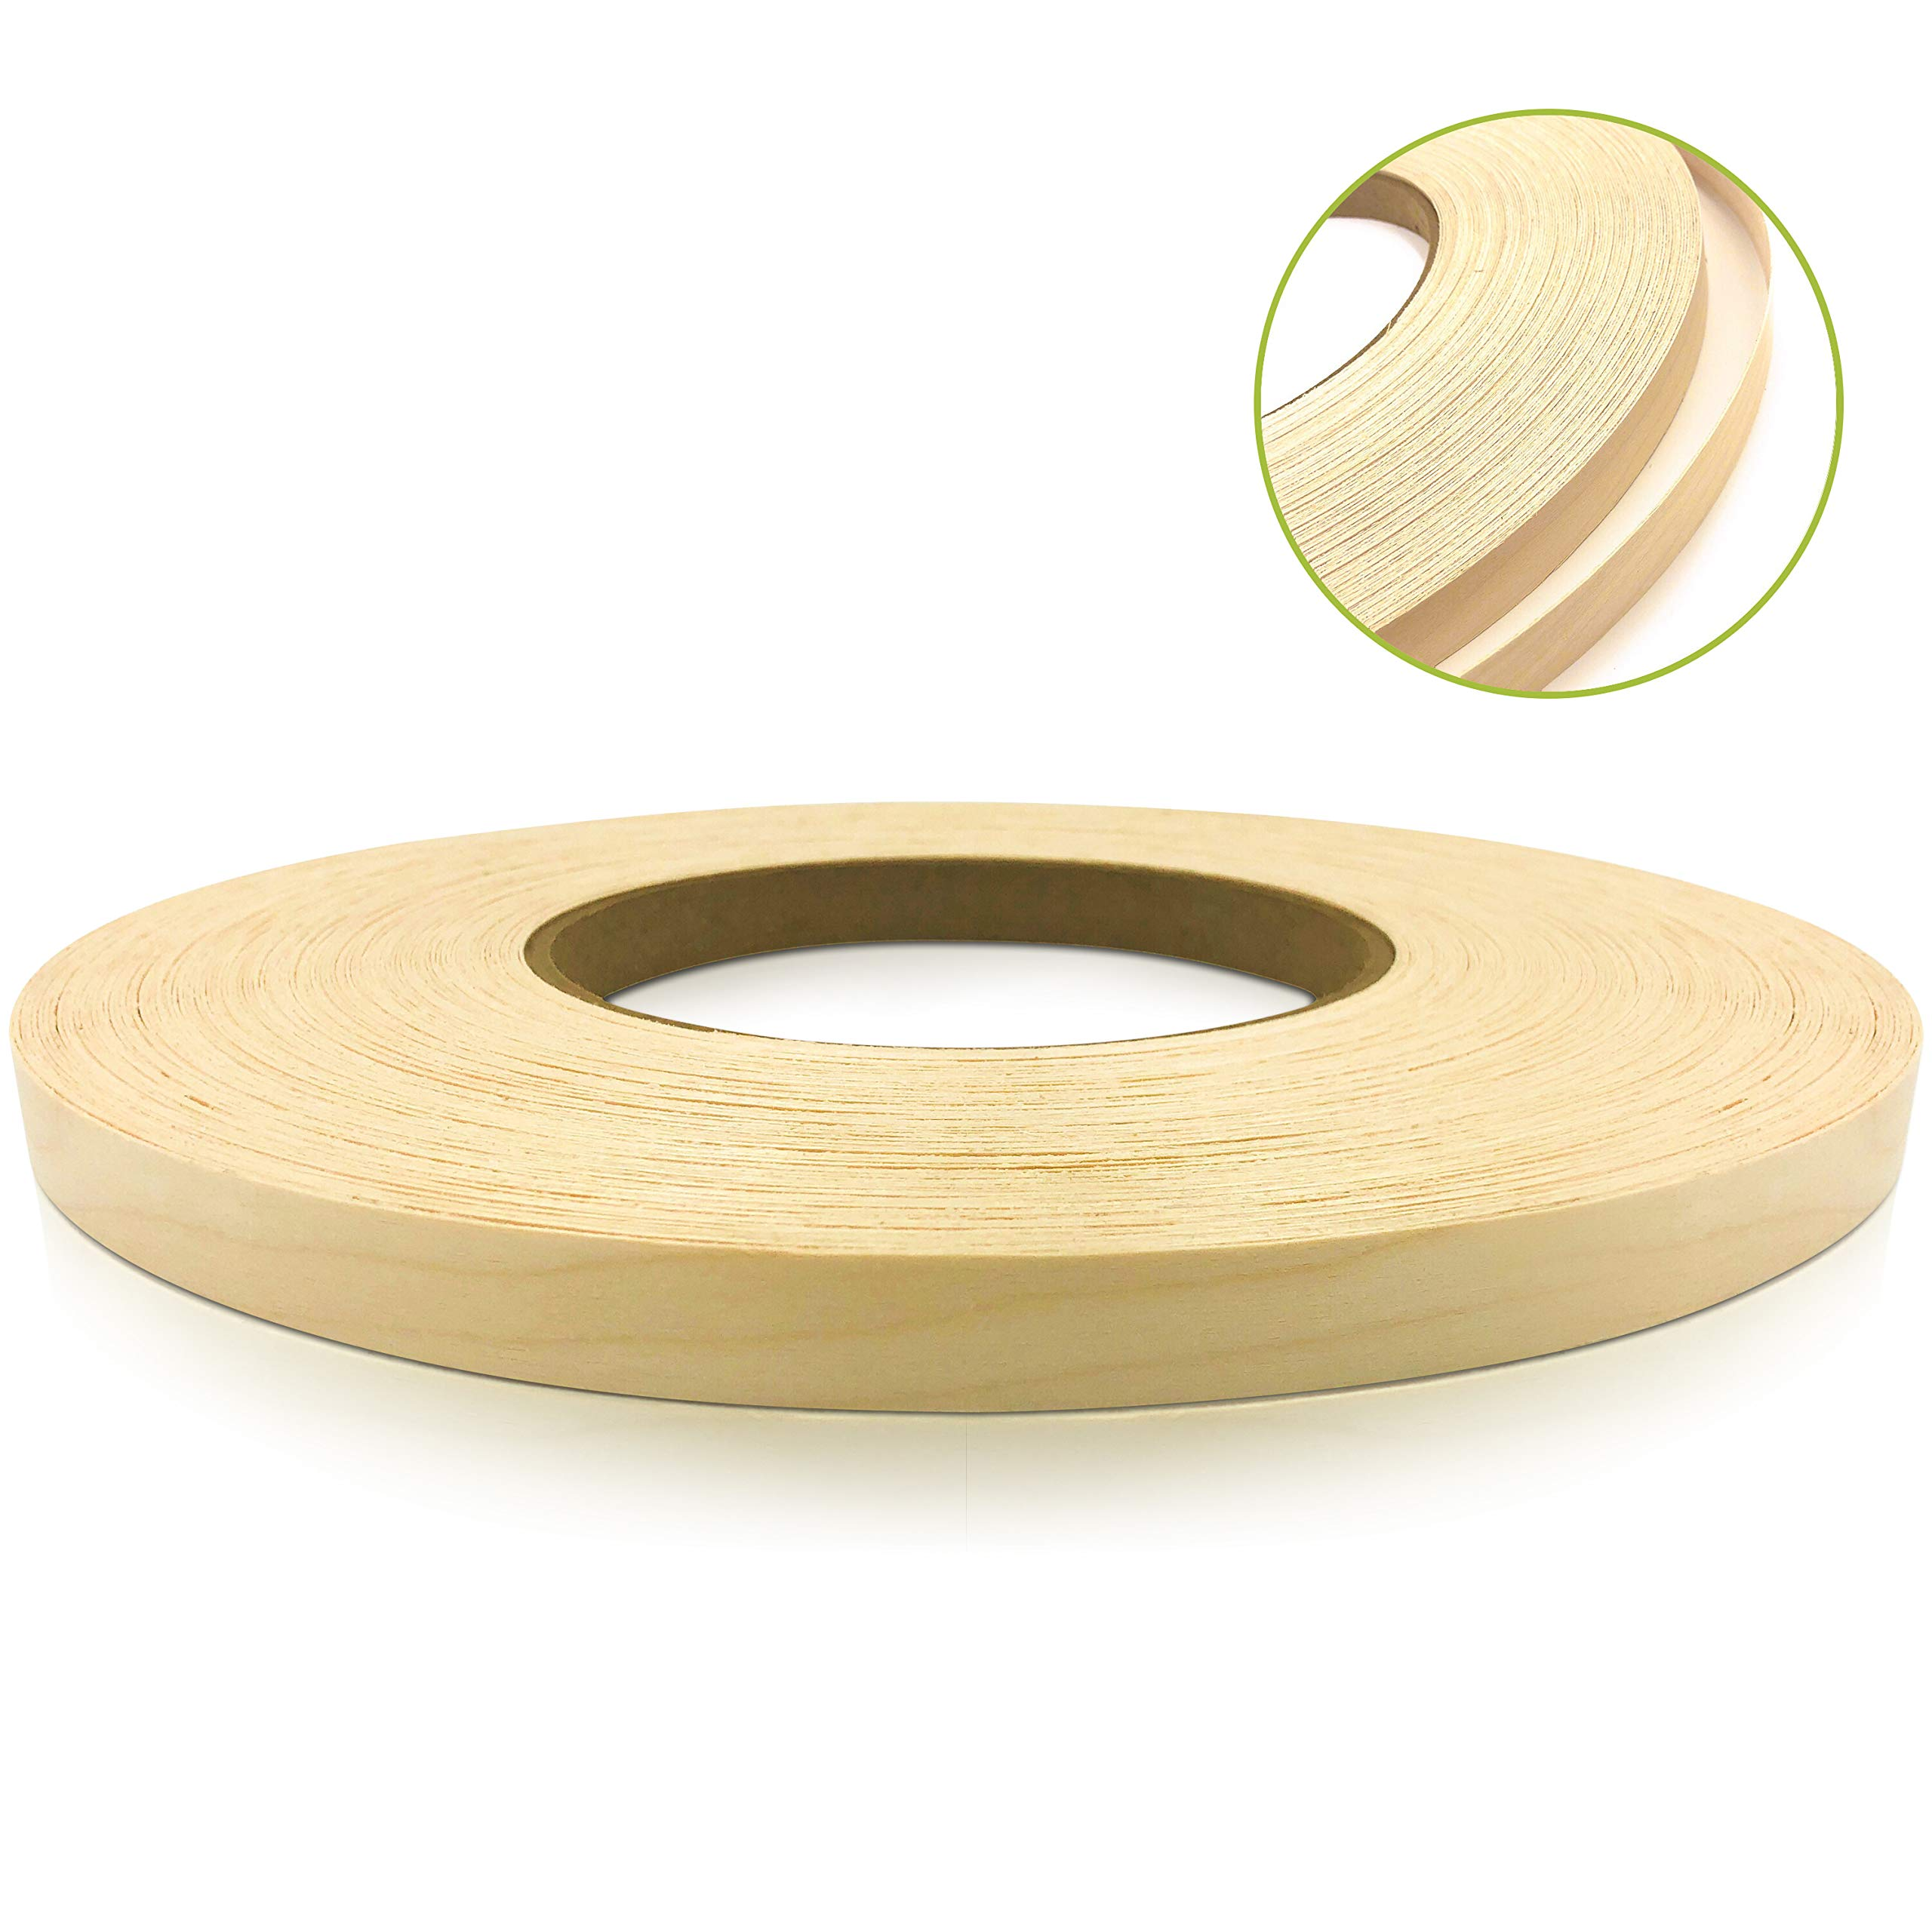 Edge Supply Maple 13/16'' X 250' Roll, Wood Veneer Edge Banding Preglued, Iron on with Hot Melt Adhesive, Flexible Wood Tape Sanded to Perfection. Easy Application, Made in USA. by Edge Supply